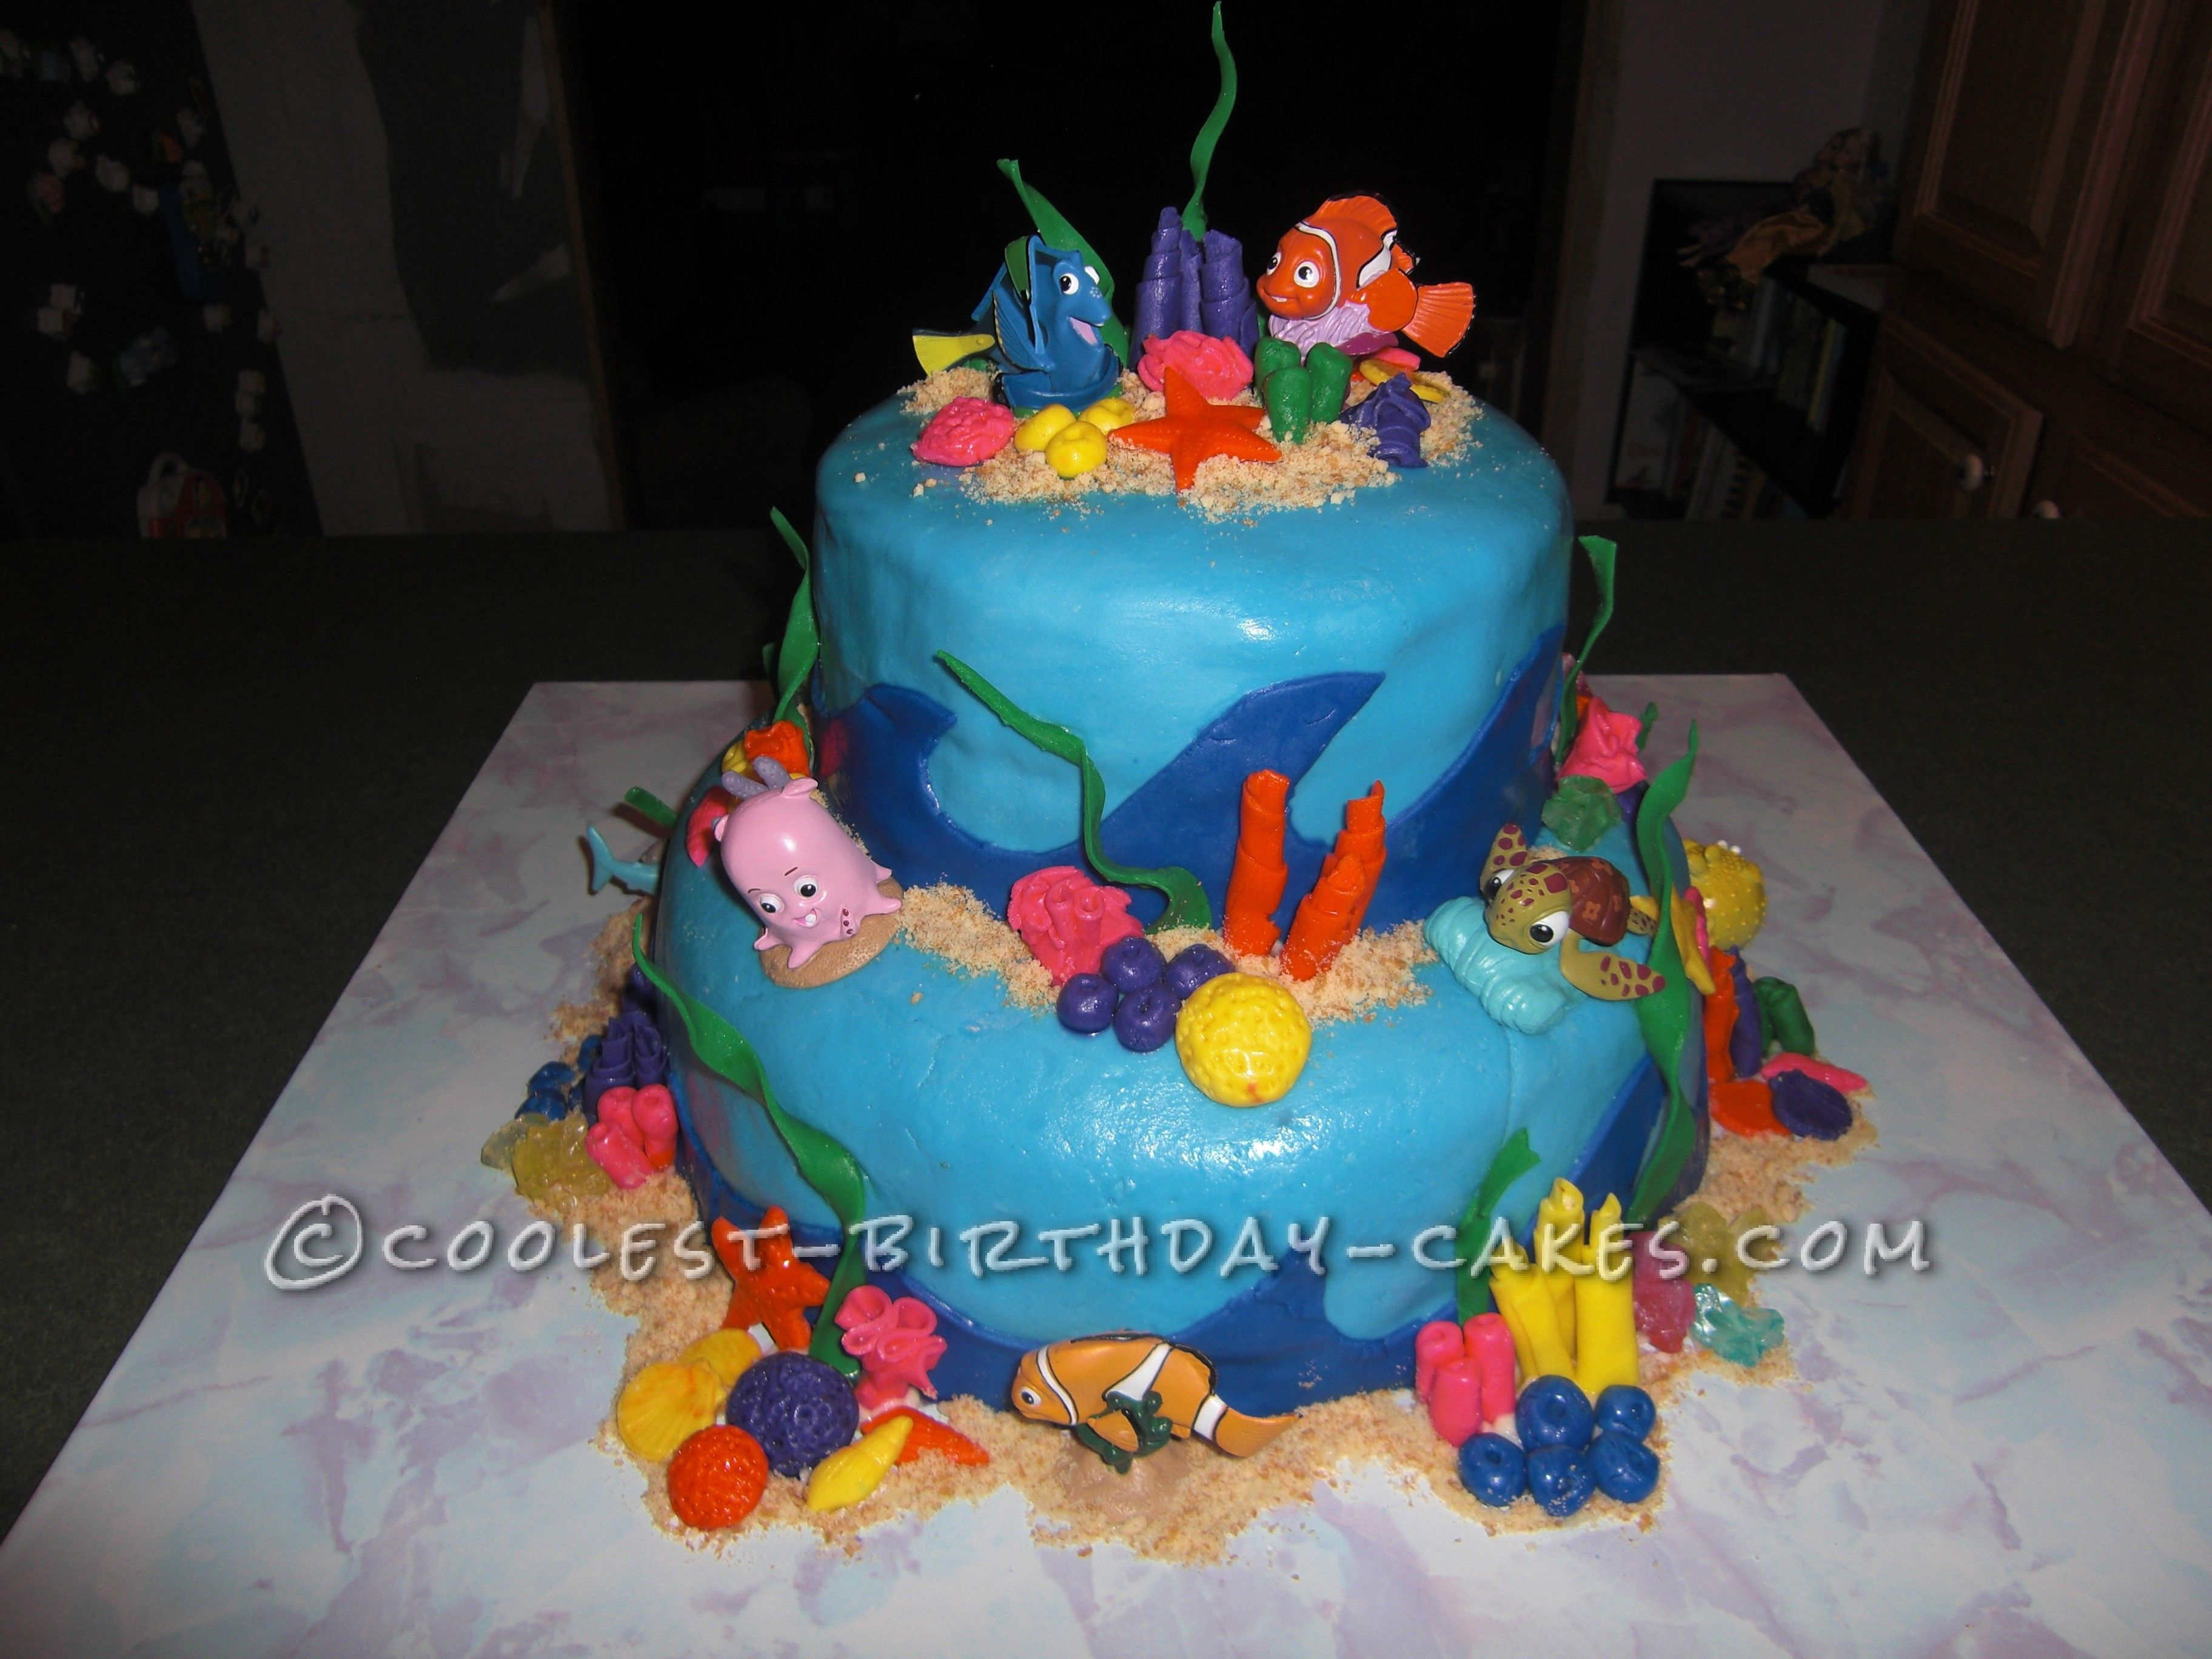 Birthday Cake For Boy 3 Years Old ~ Coolest nemo birthday cake for a year old boy birthday cakes